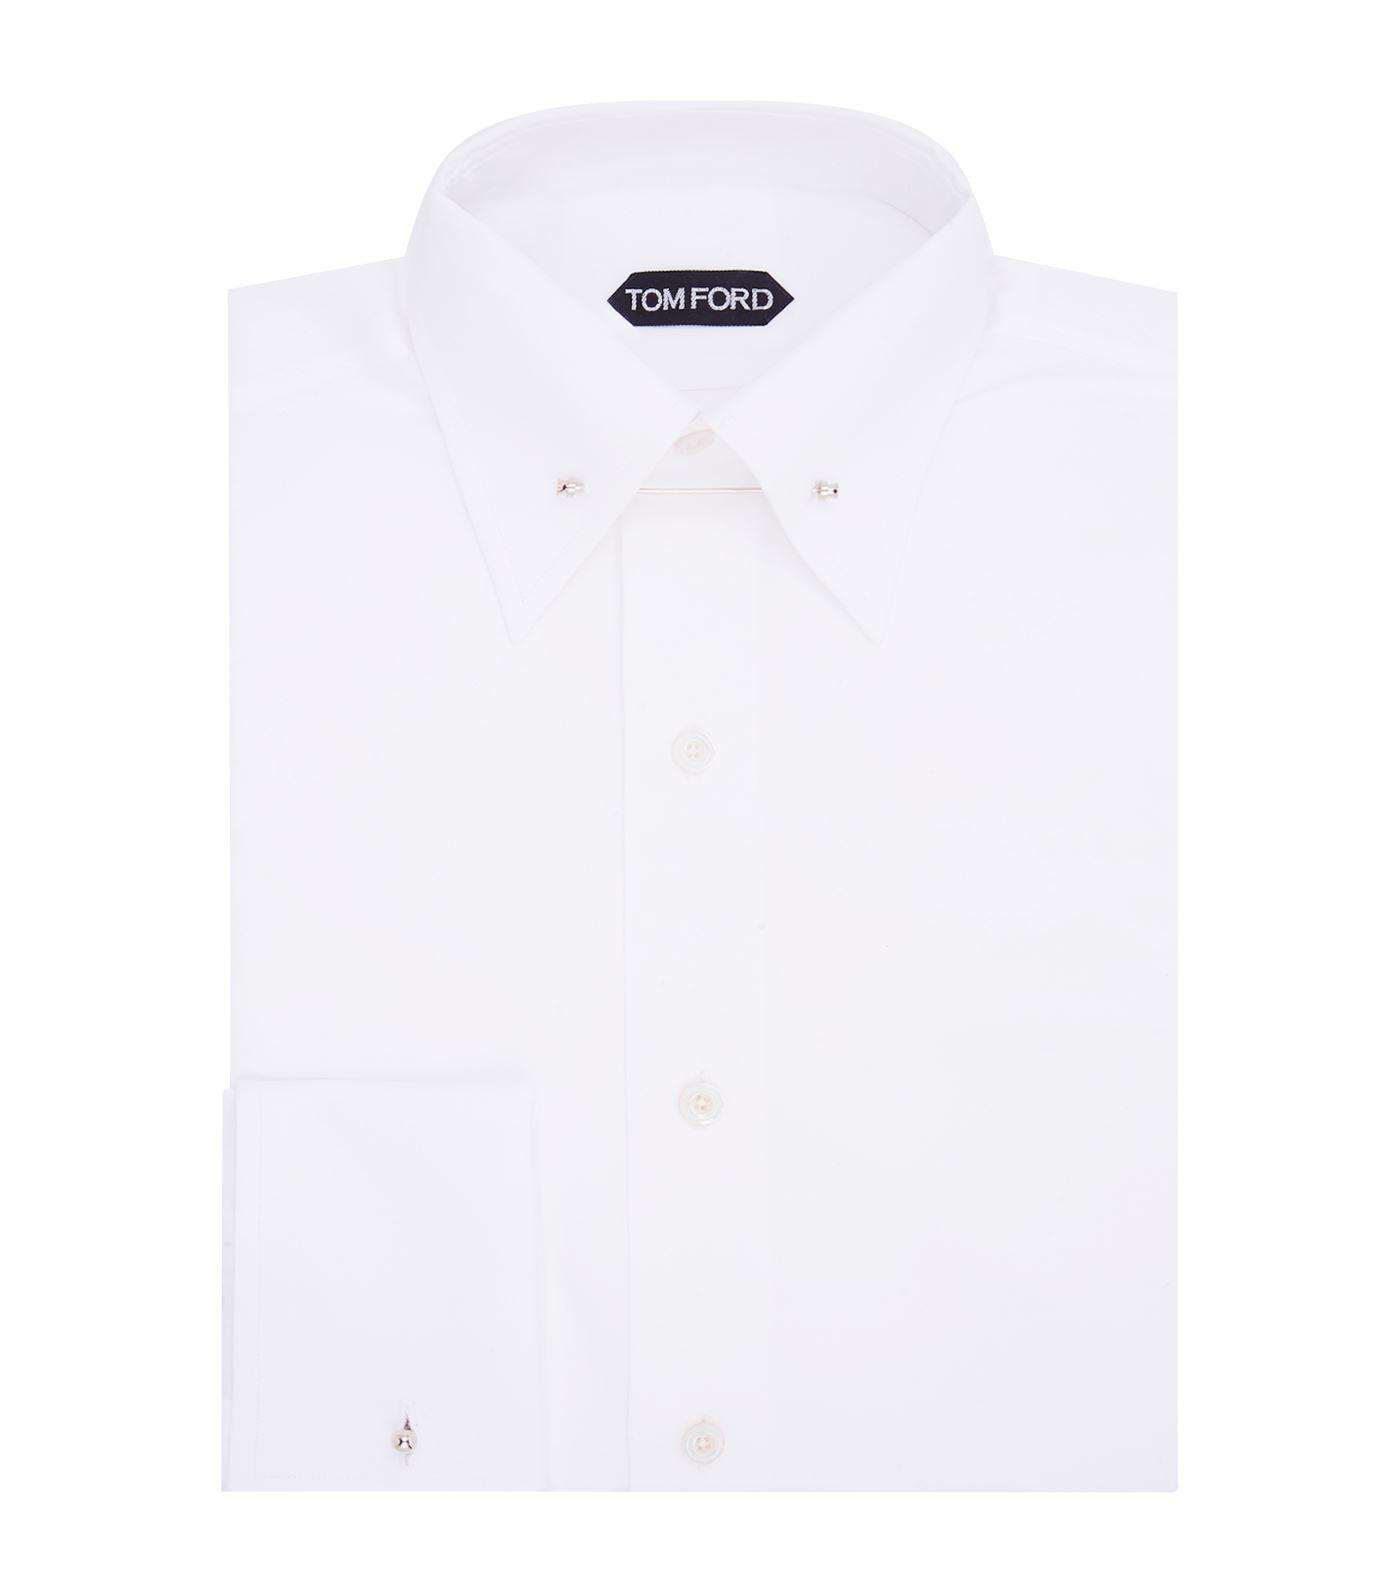 Tommy Hilfiger White French Cuff Dress Shirt With Collar Bar Bcd